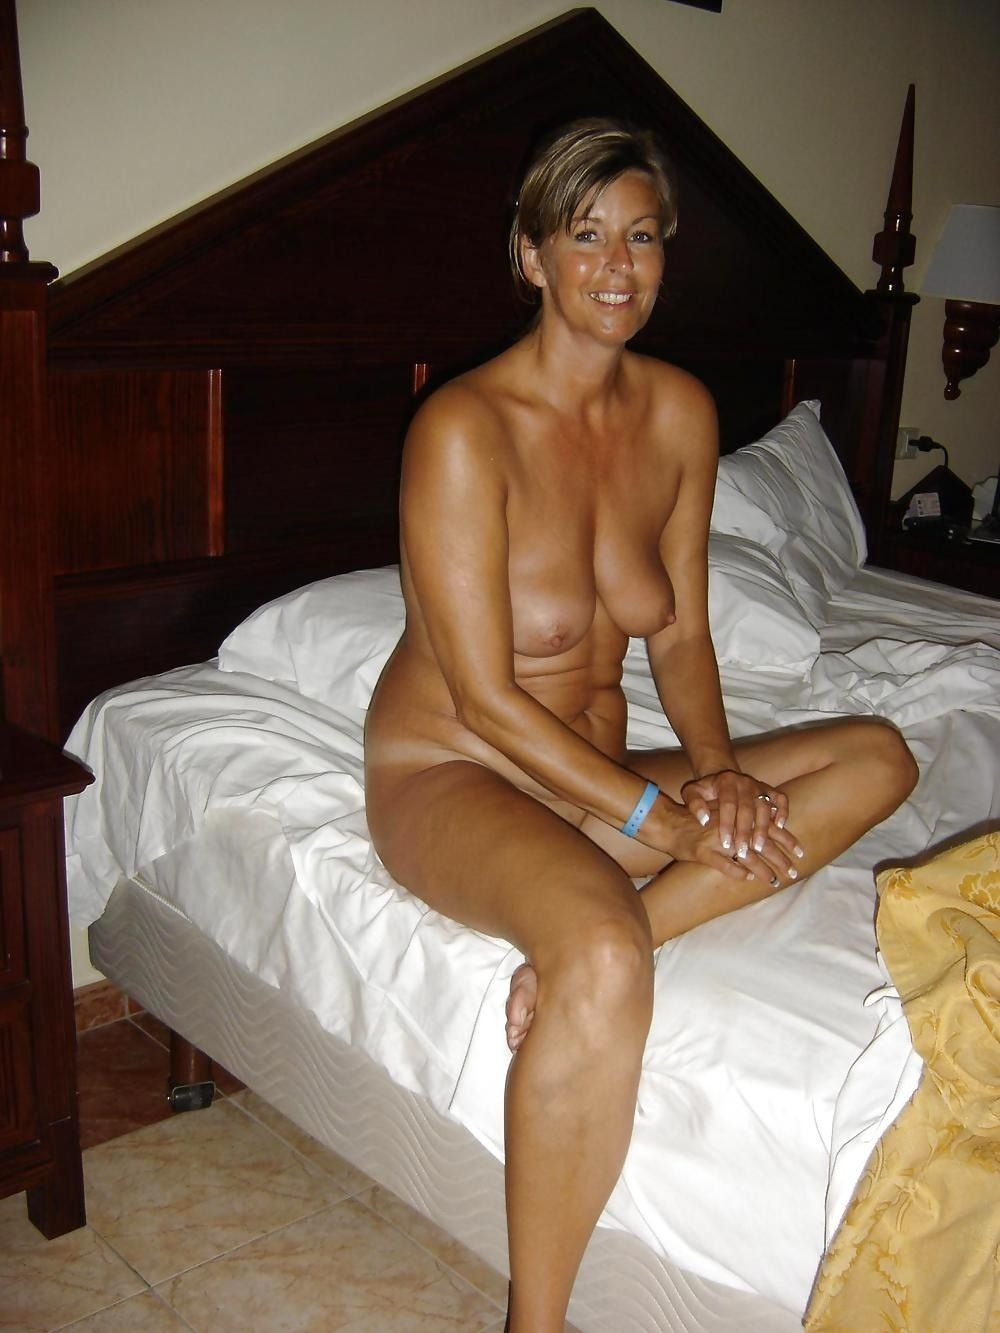 Horny mature women tumblr